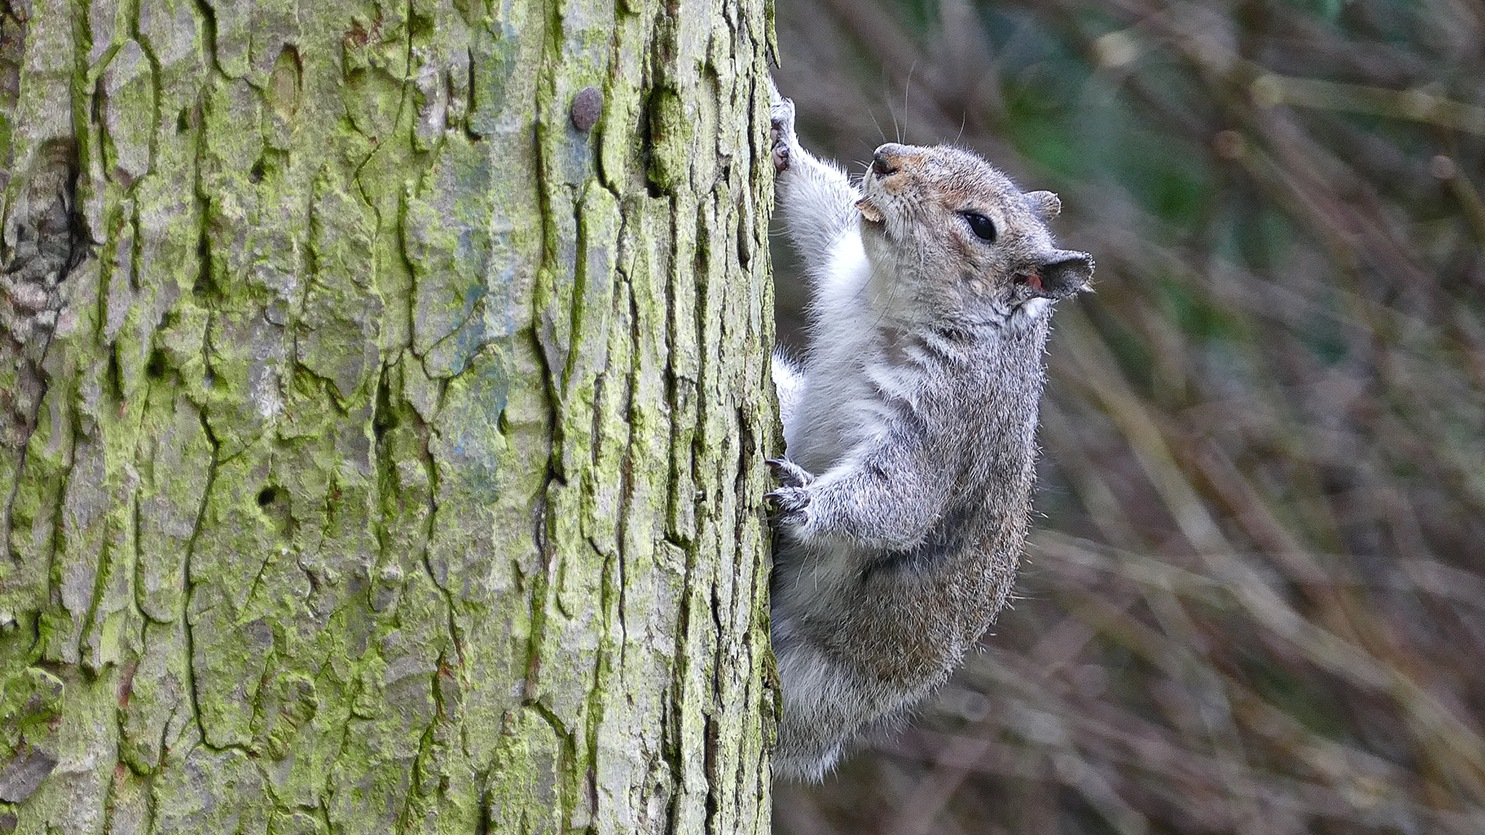 Squirrel Up A Tree by Steven Iodice